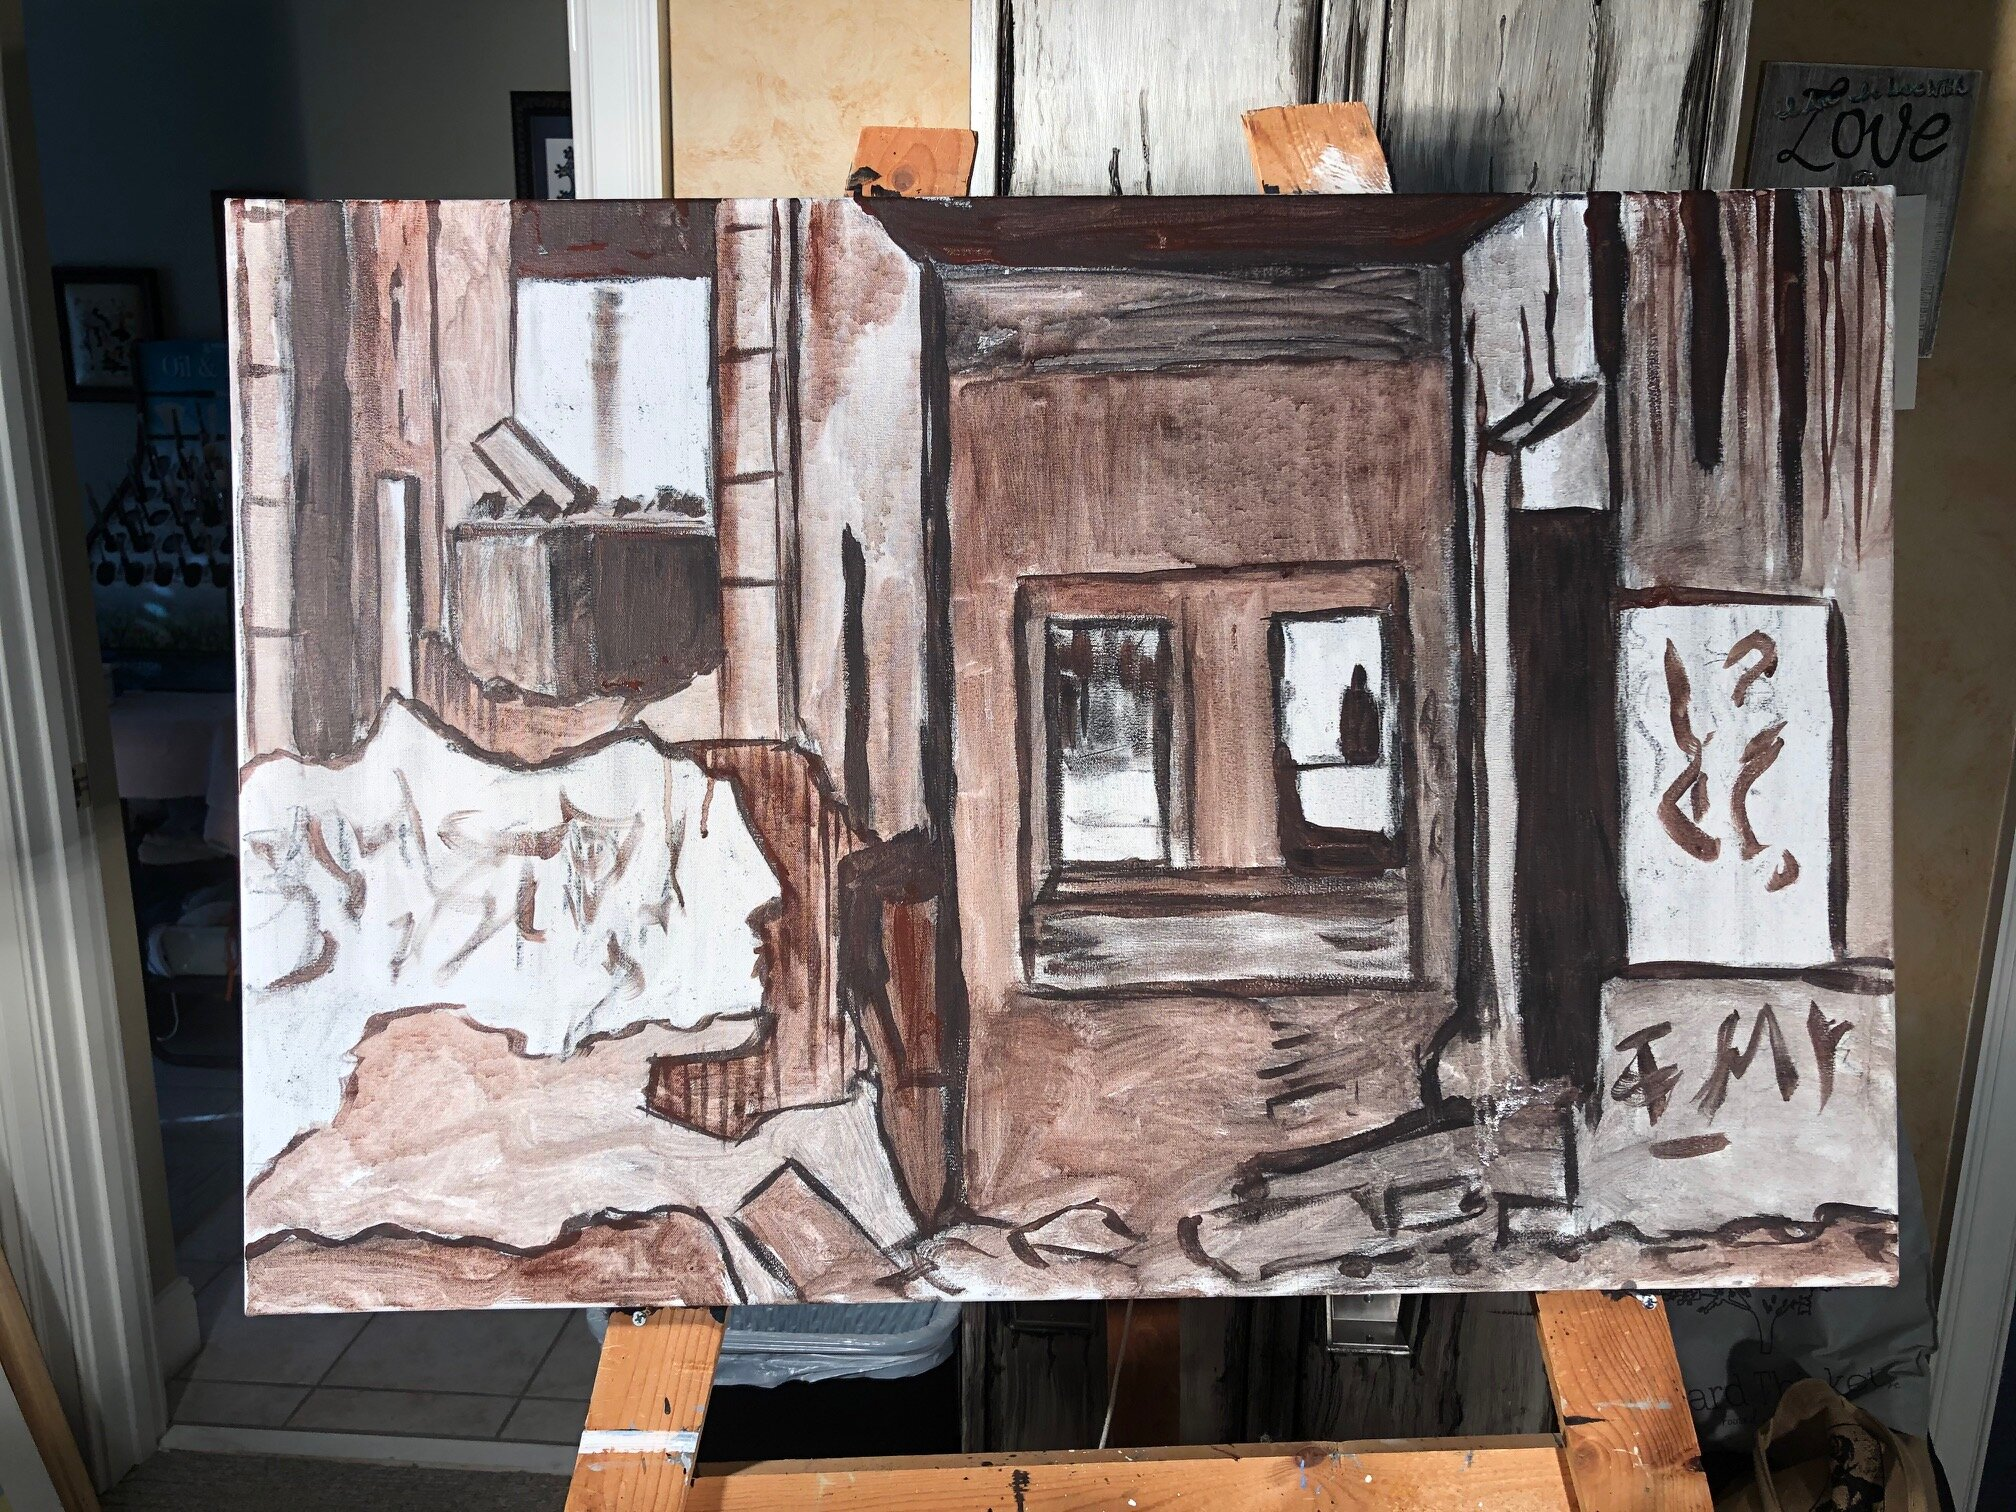 After sketching design on canvas, started underpainting to establish composition and values. Next, modeling paste will be added to add texture to elements in the foreground